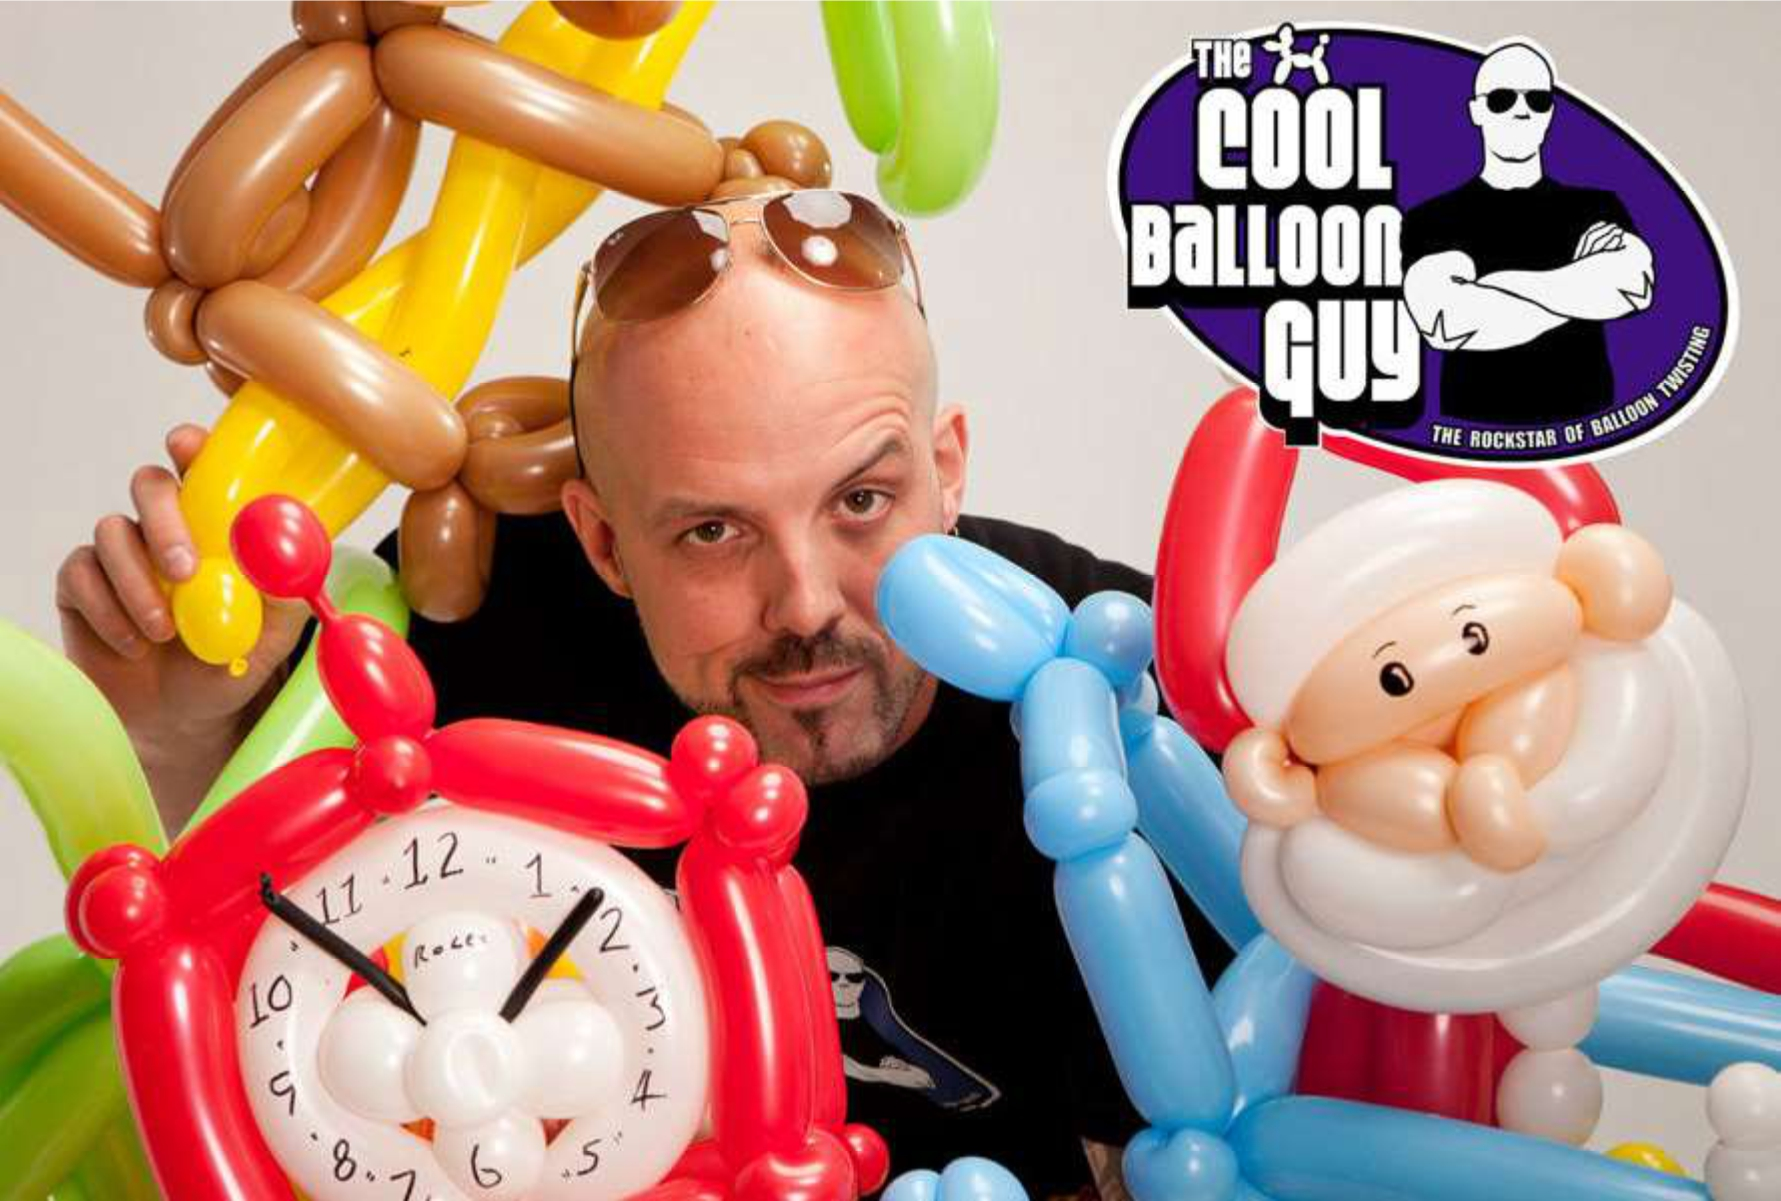 Cool Balloon Guy